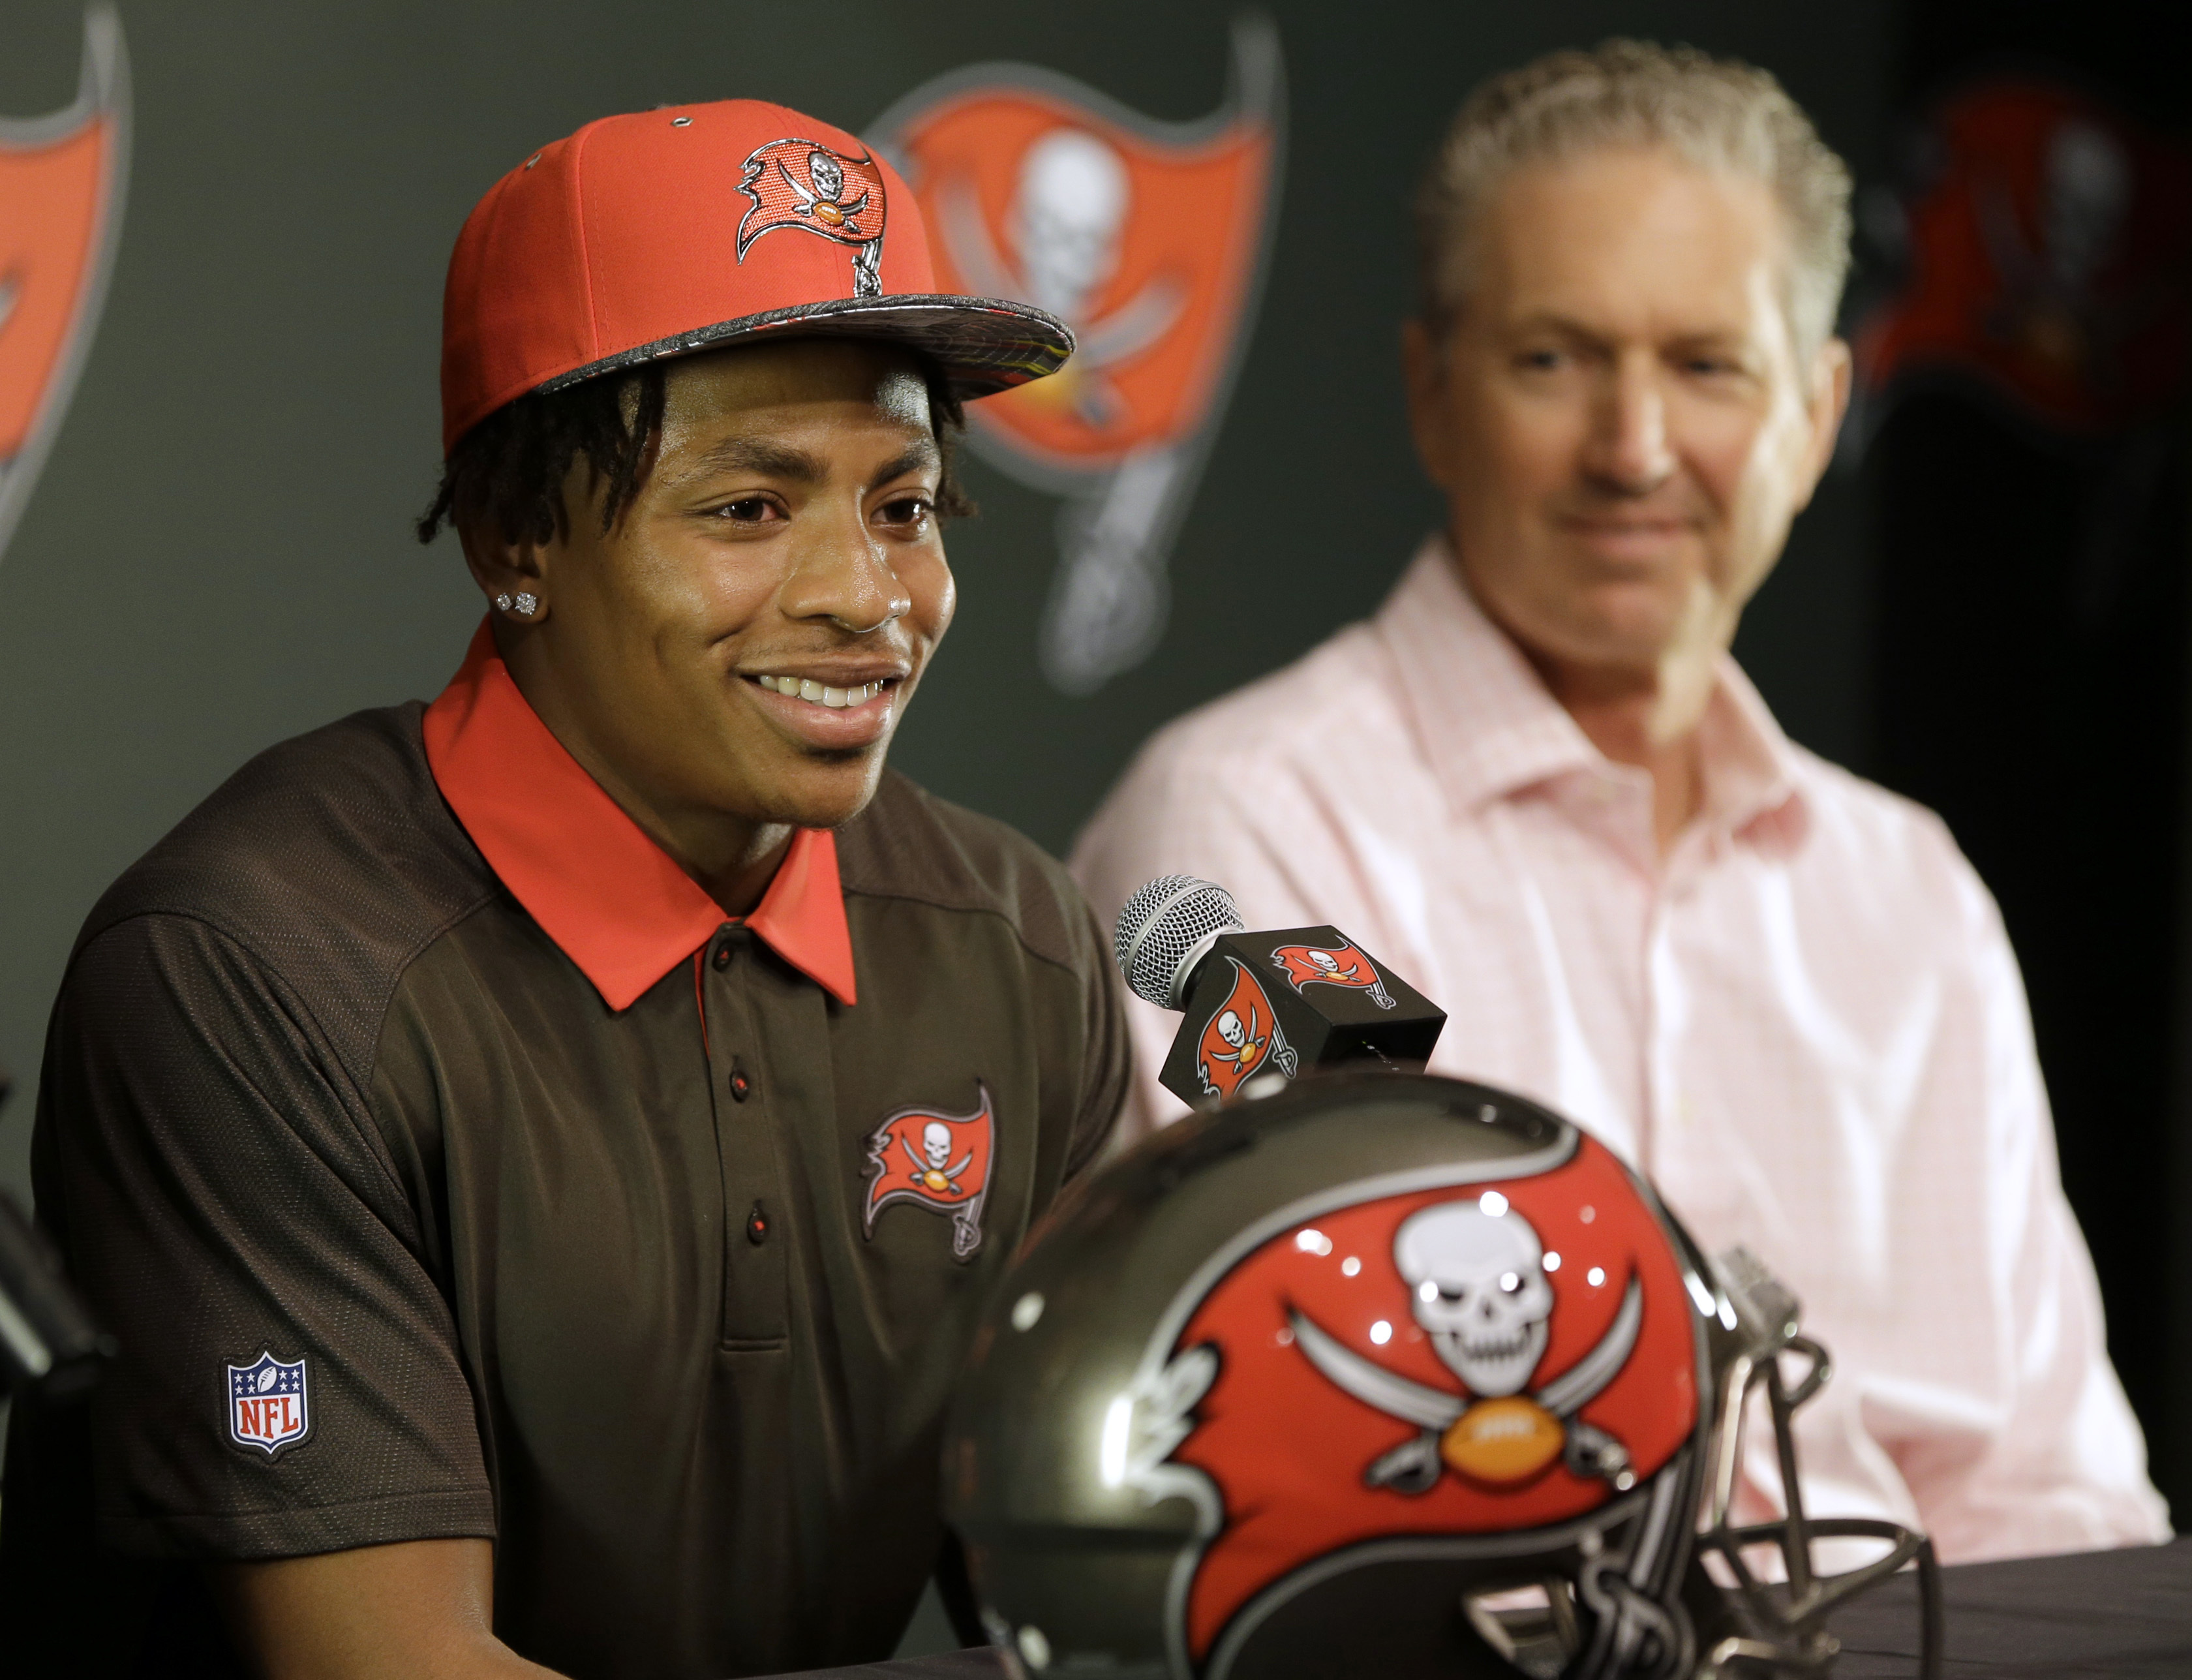 Tampa Bay Buccaneers first-round draft pick Vernon Hargreaves, left, smiles as he sits with head coach Dirk Koetter during a news conference Friday, April 29, 2016, in Tampa, Fla. Hargreaves, formally of the University of Florida, was the 11th overall pic